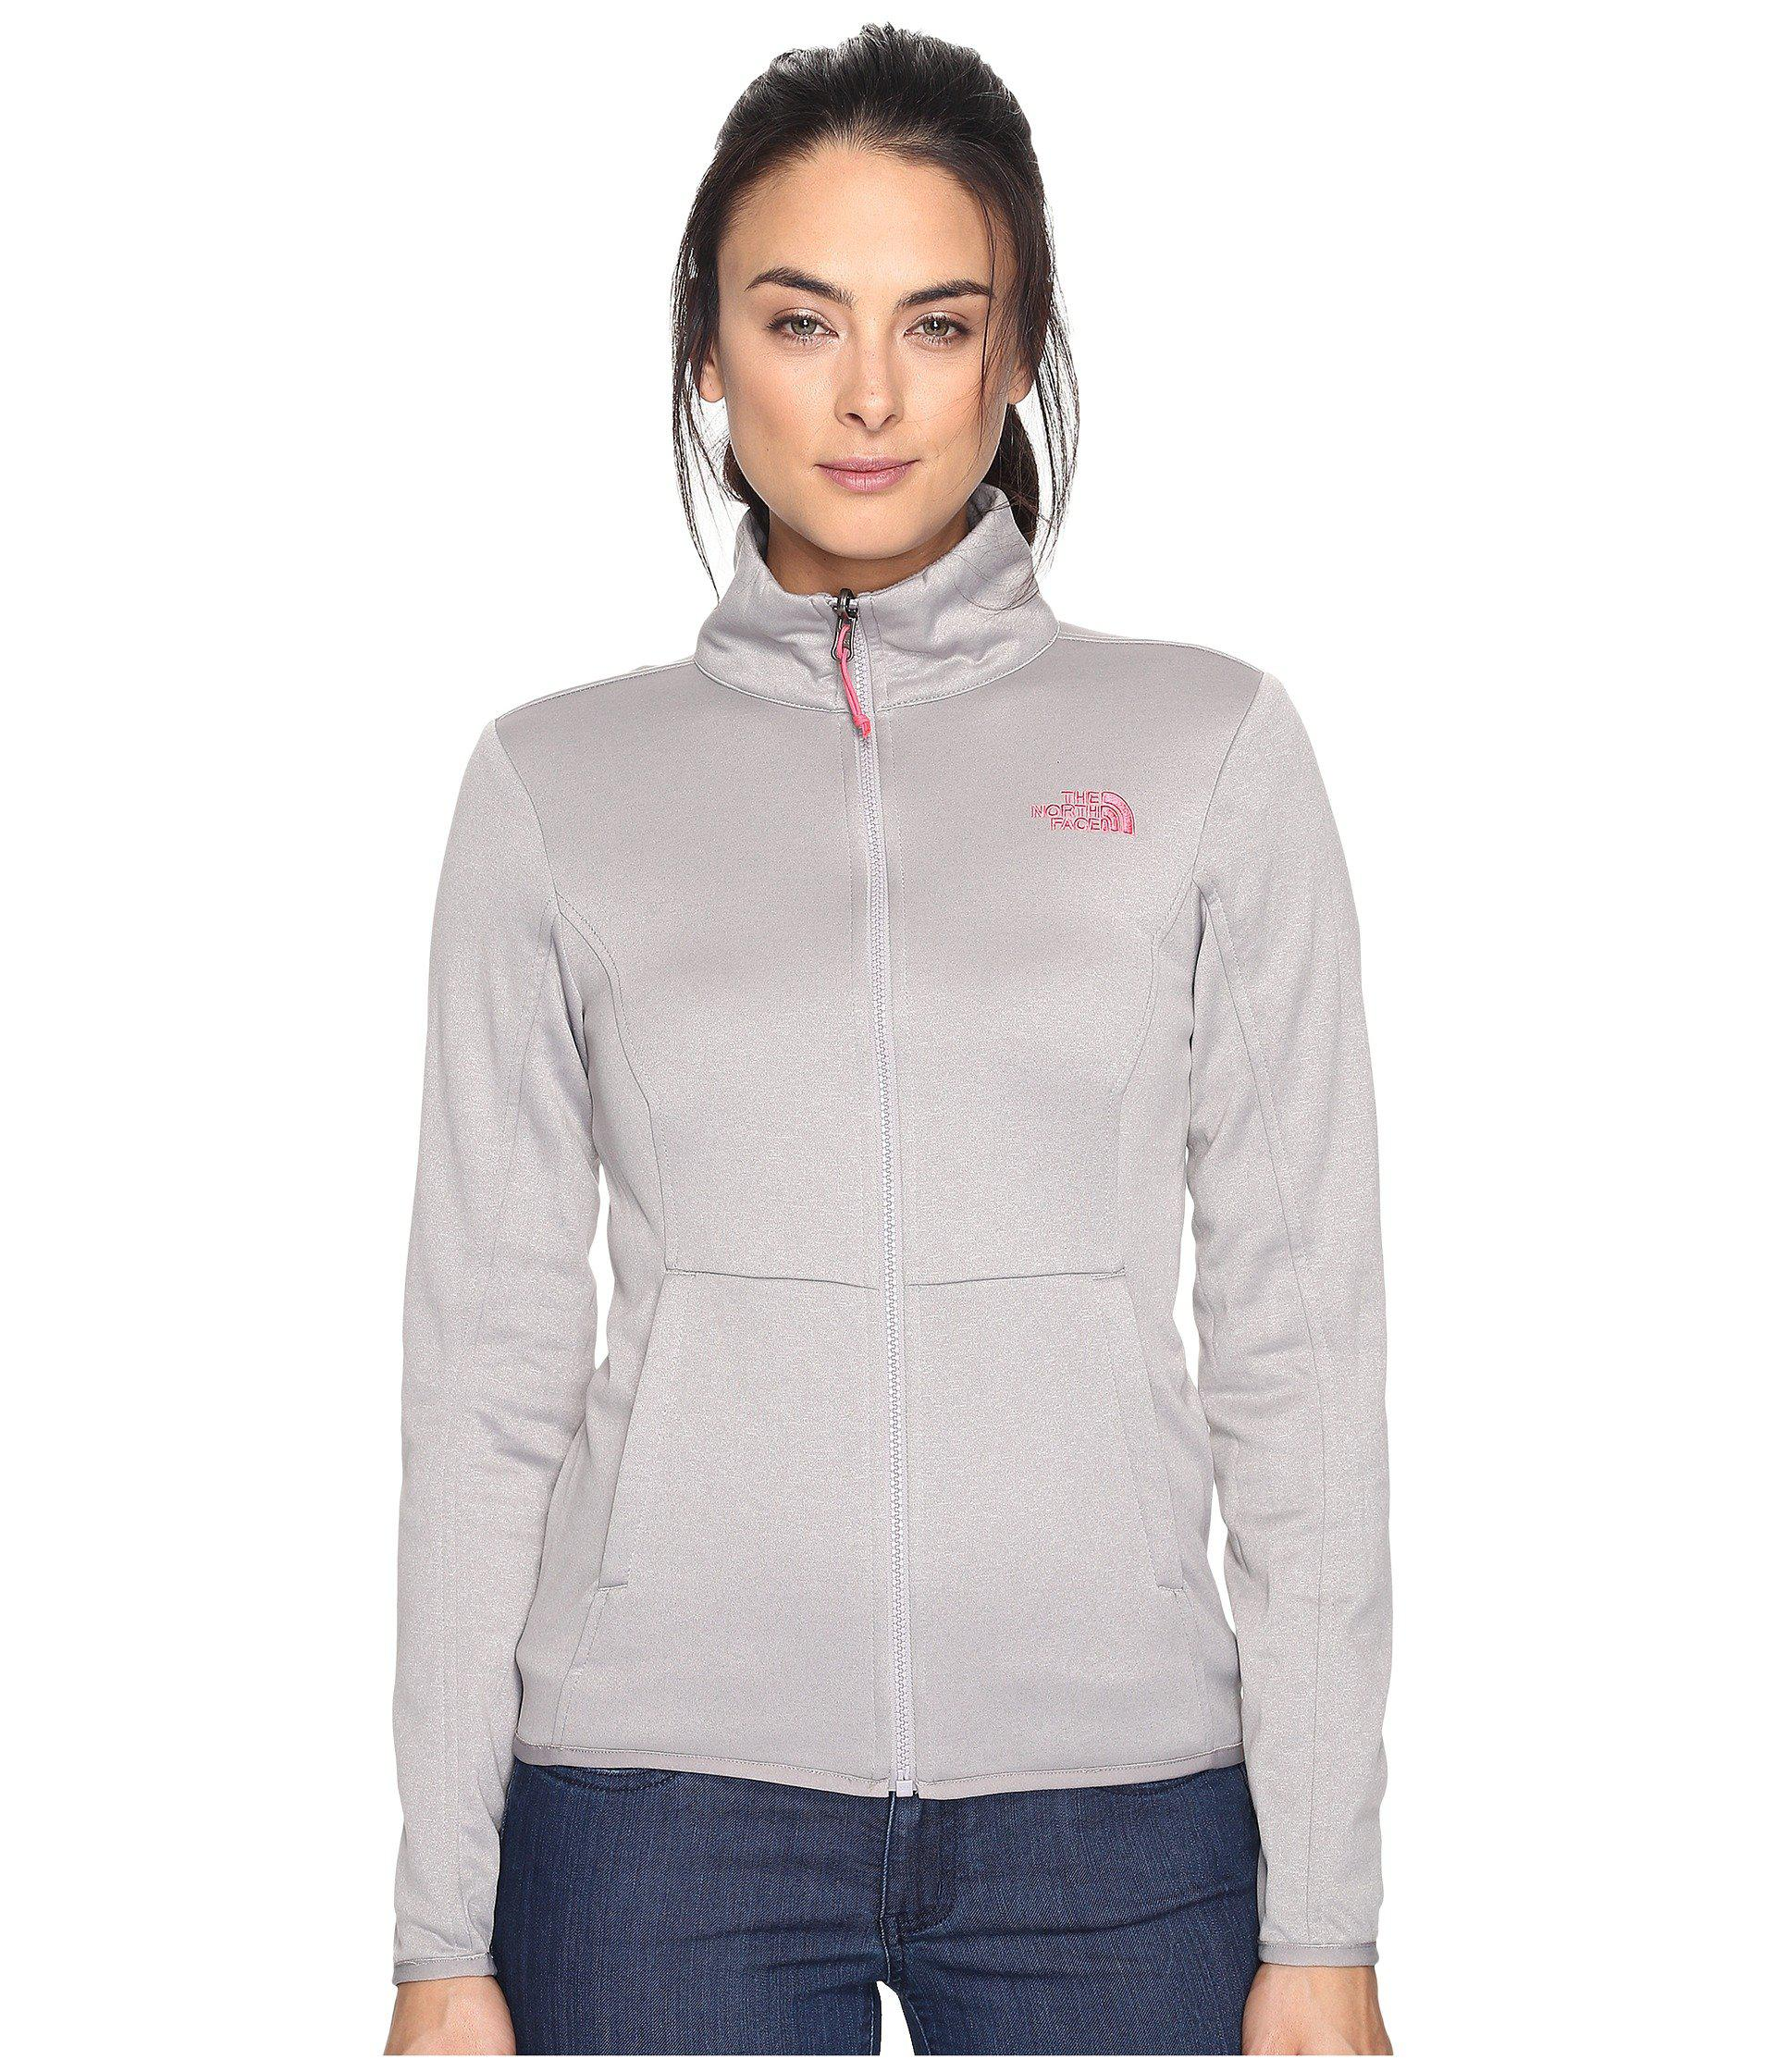 ac0d855d258a Lyst - The North Face Arrowood Triclimate® Jacket in Pink